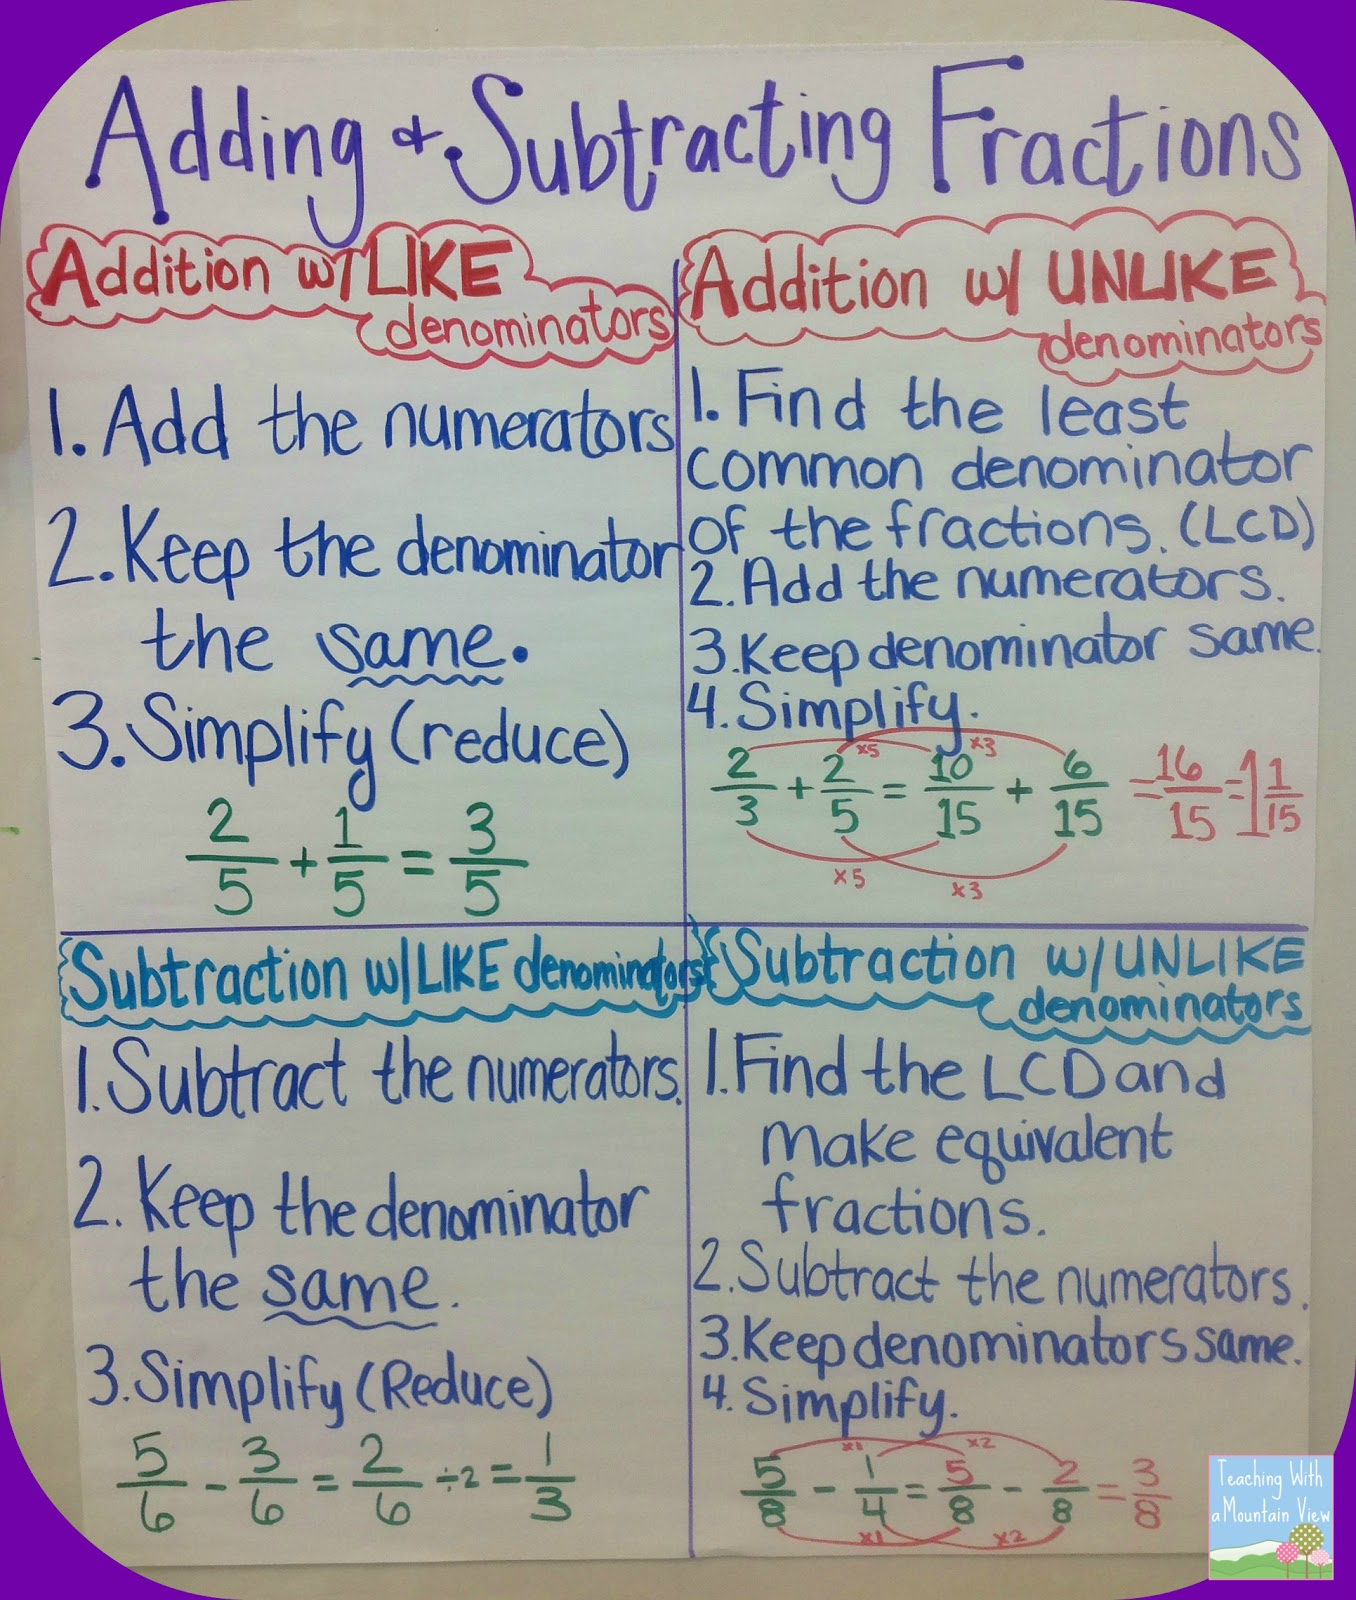 hight resolution of Adding \u0026 Subtracting Fractions - Teaching with a Mountain View